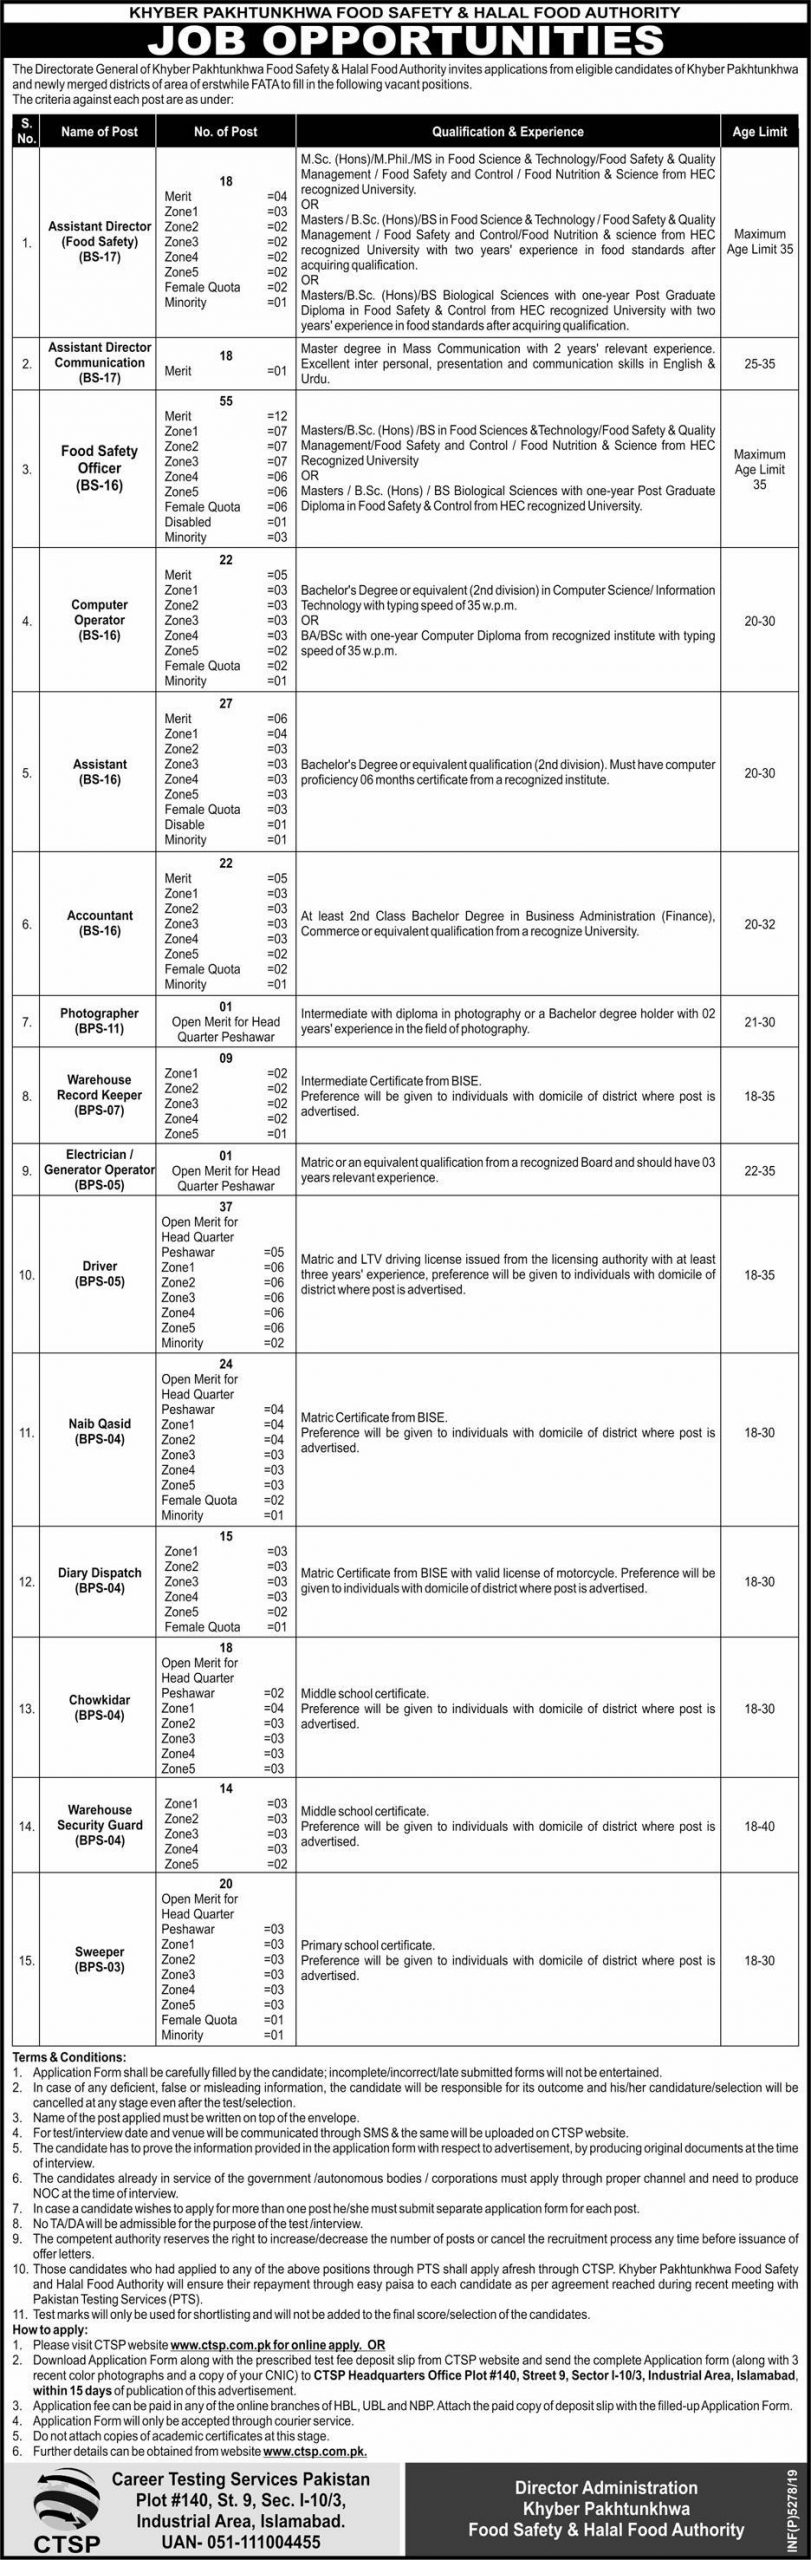 KPK Food Safety Halal Food Authority Jobs CTSP Answer Keys Result